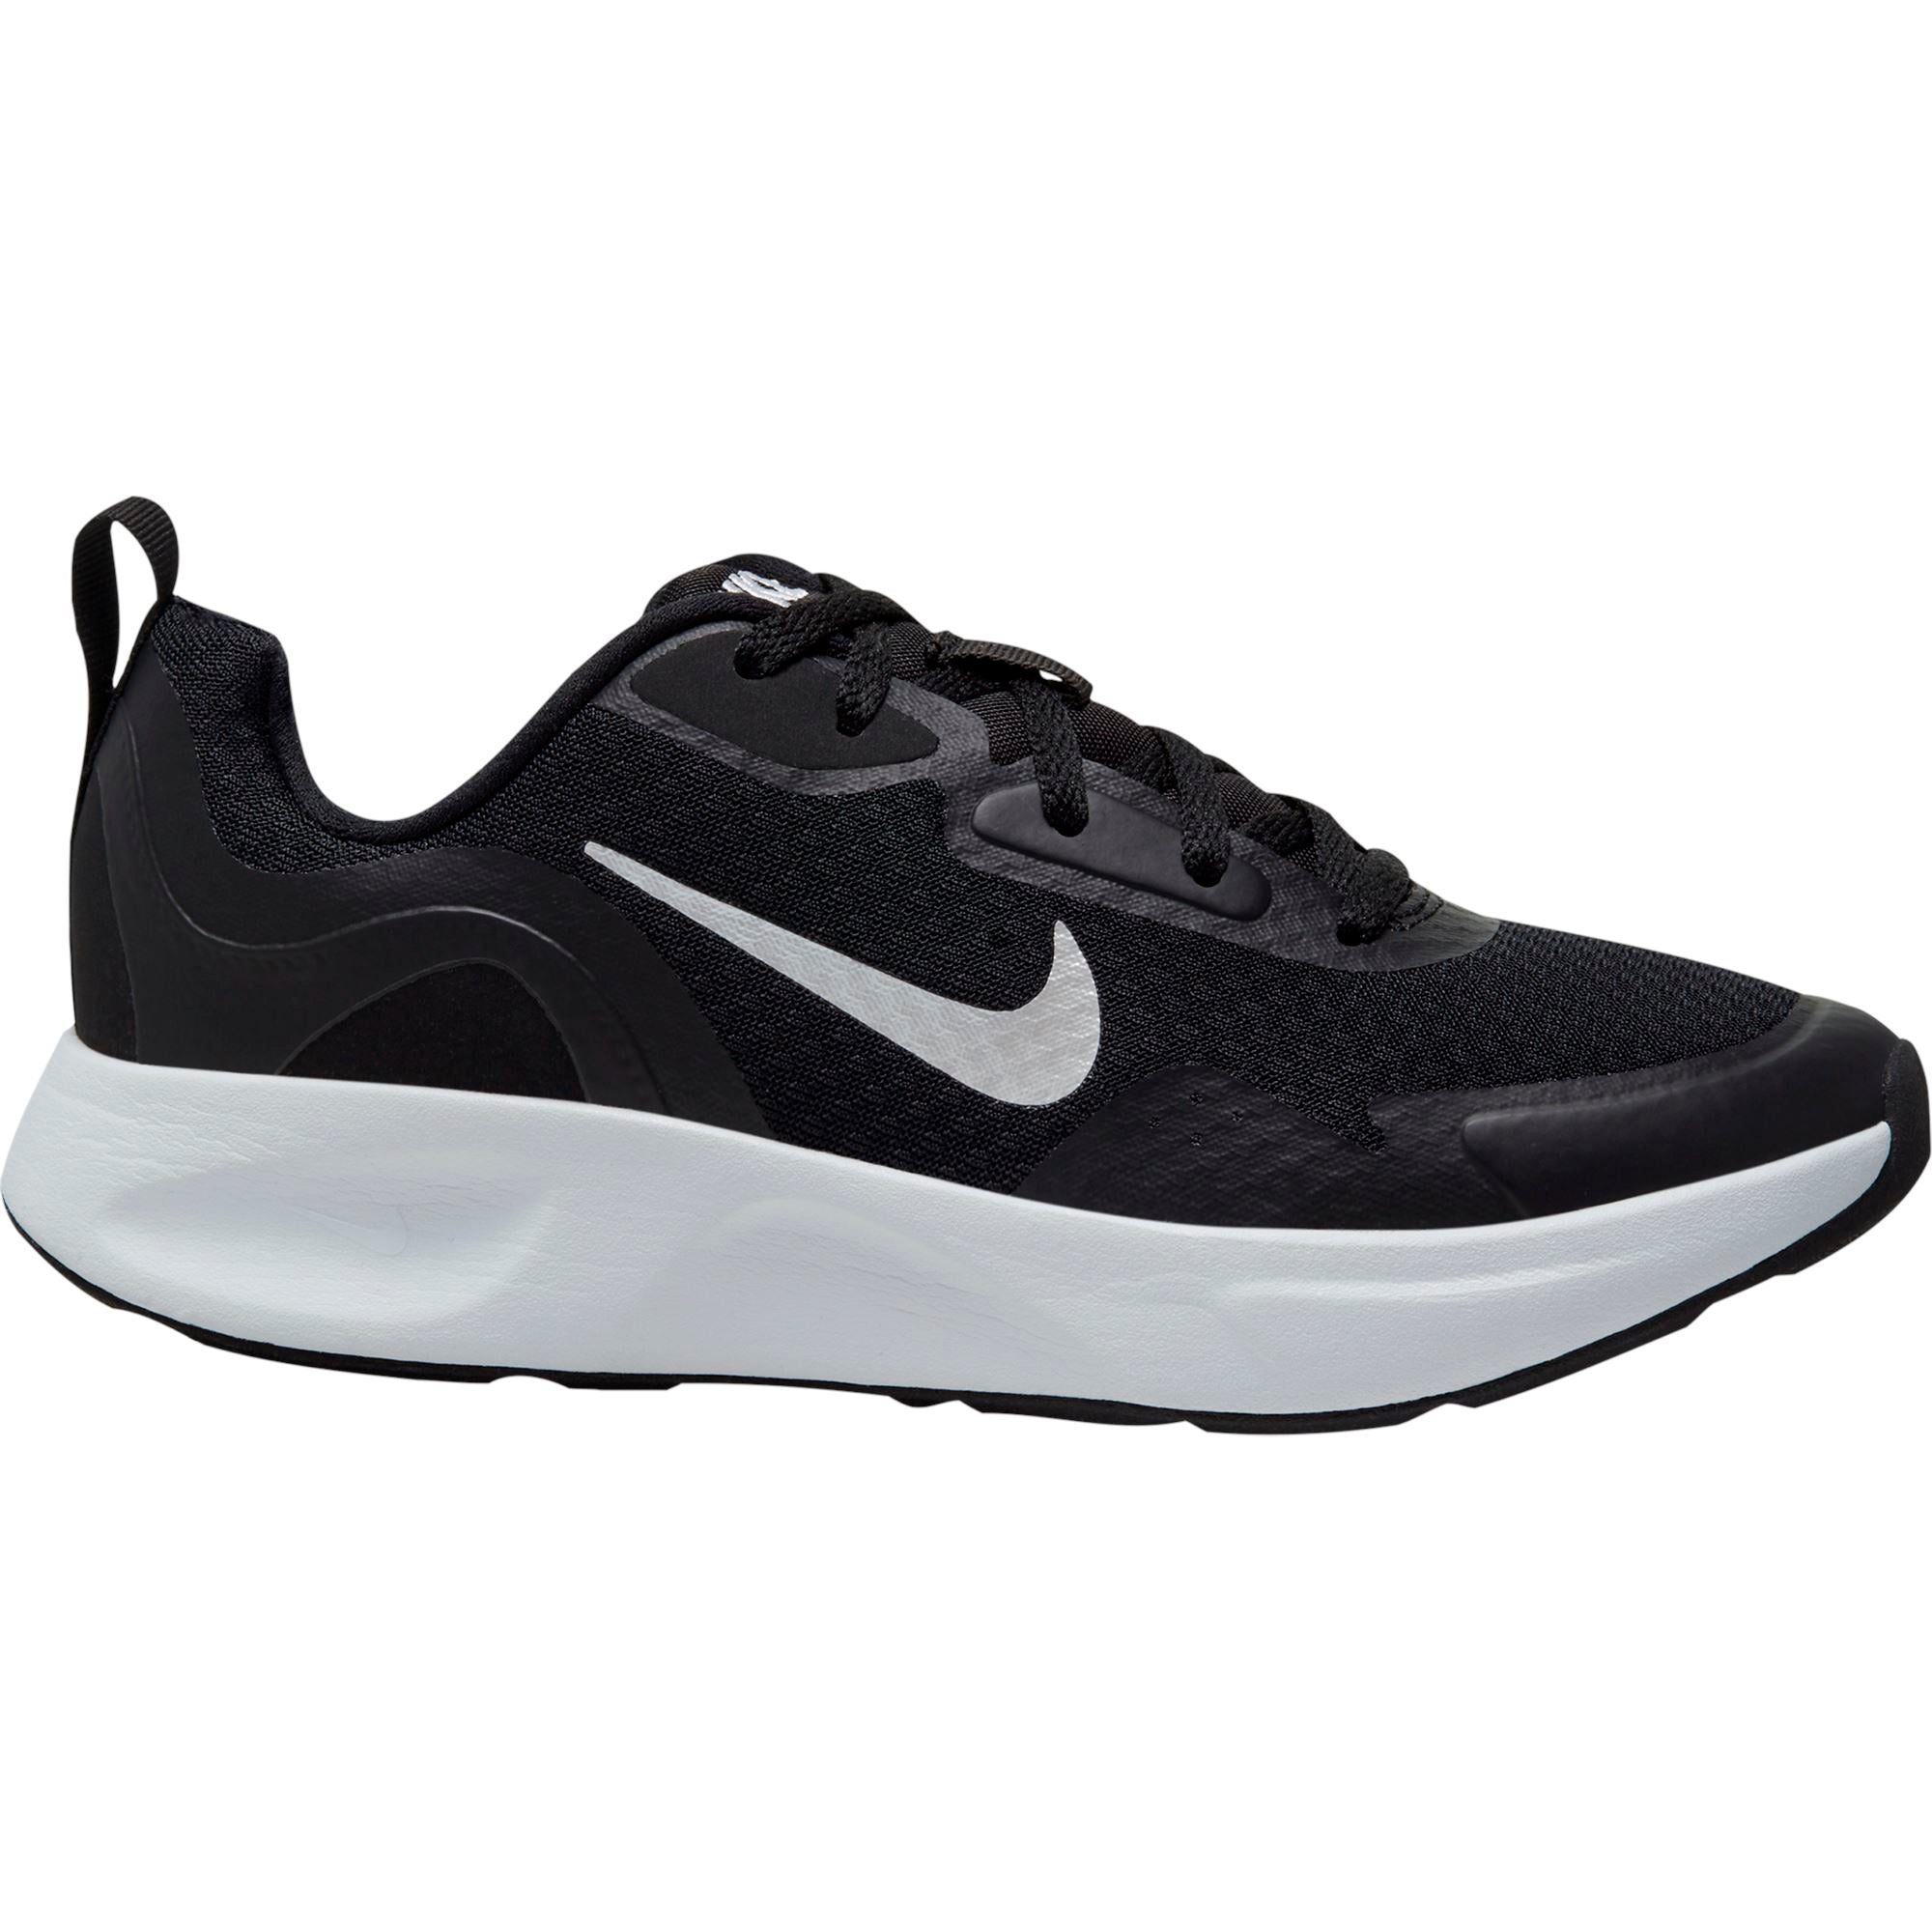 Nike Womens Wearallday - Black/White SP-Footwear-Womens Nike